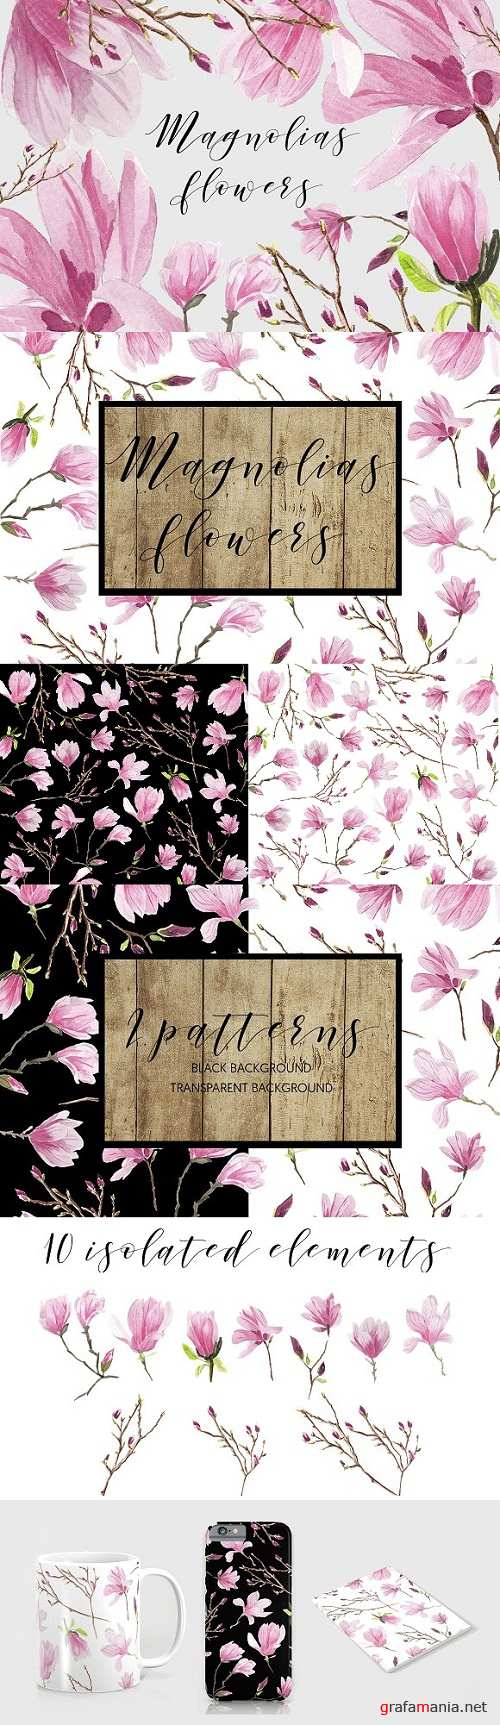 Magnolias Watercolor flowers 1553277